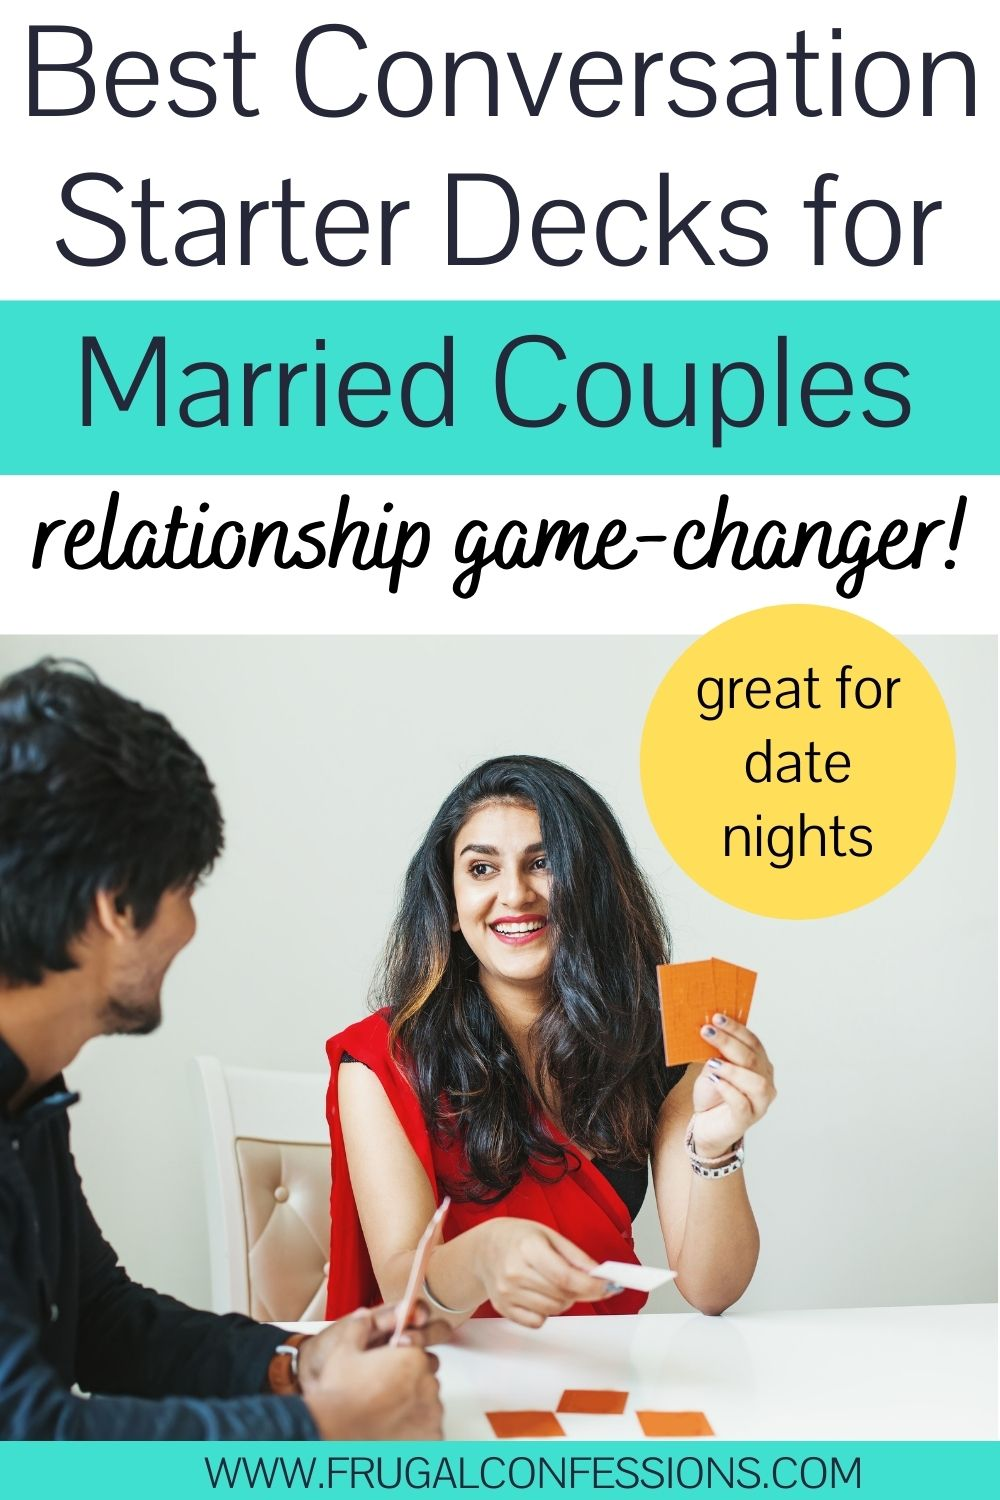 """couple smiling at each other, playing with a deck of conversation starters, text overlay """"best conversation starters for married couples"""""""